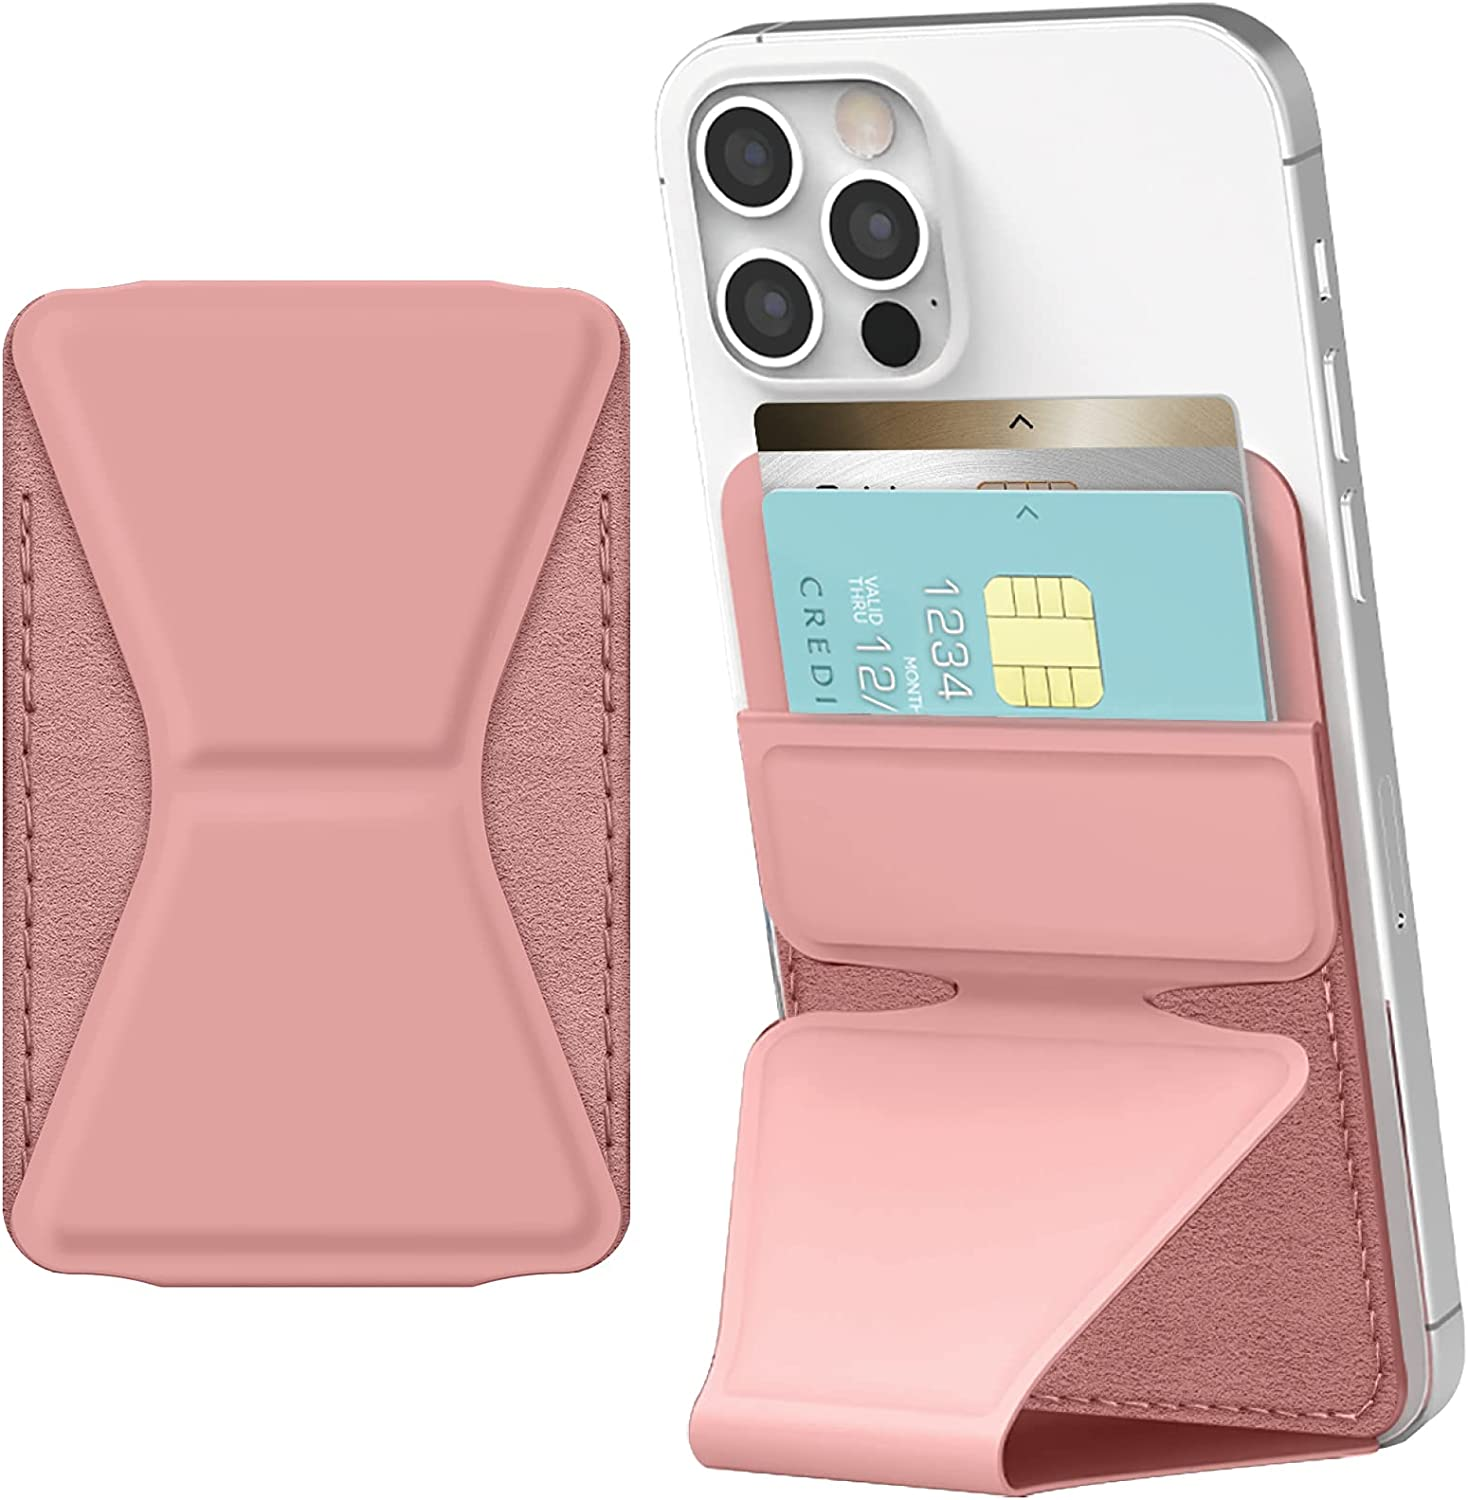 JUST4YOU Card Holder Stand Wallet Case for Smartphones, Tablets, iPhones, Android Phones [Premium PU Leather, 2 Card Storage, Kickstand] - Pink